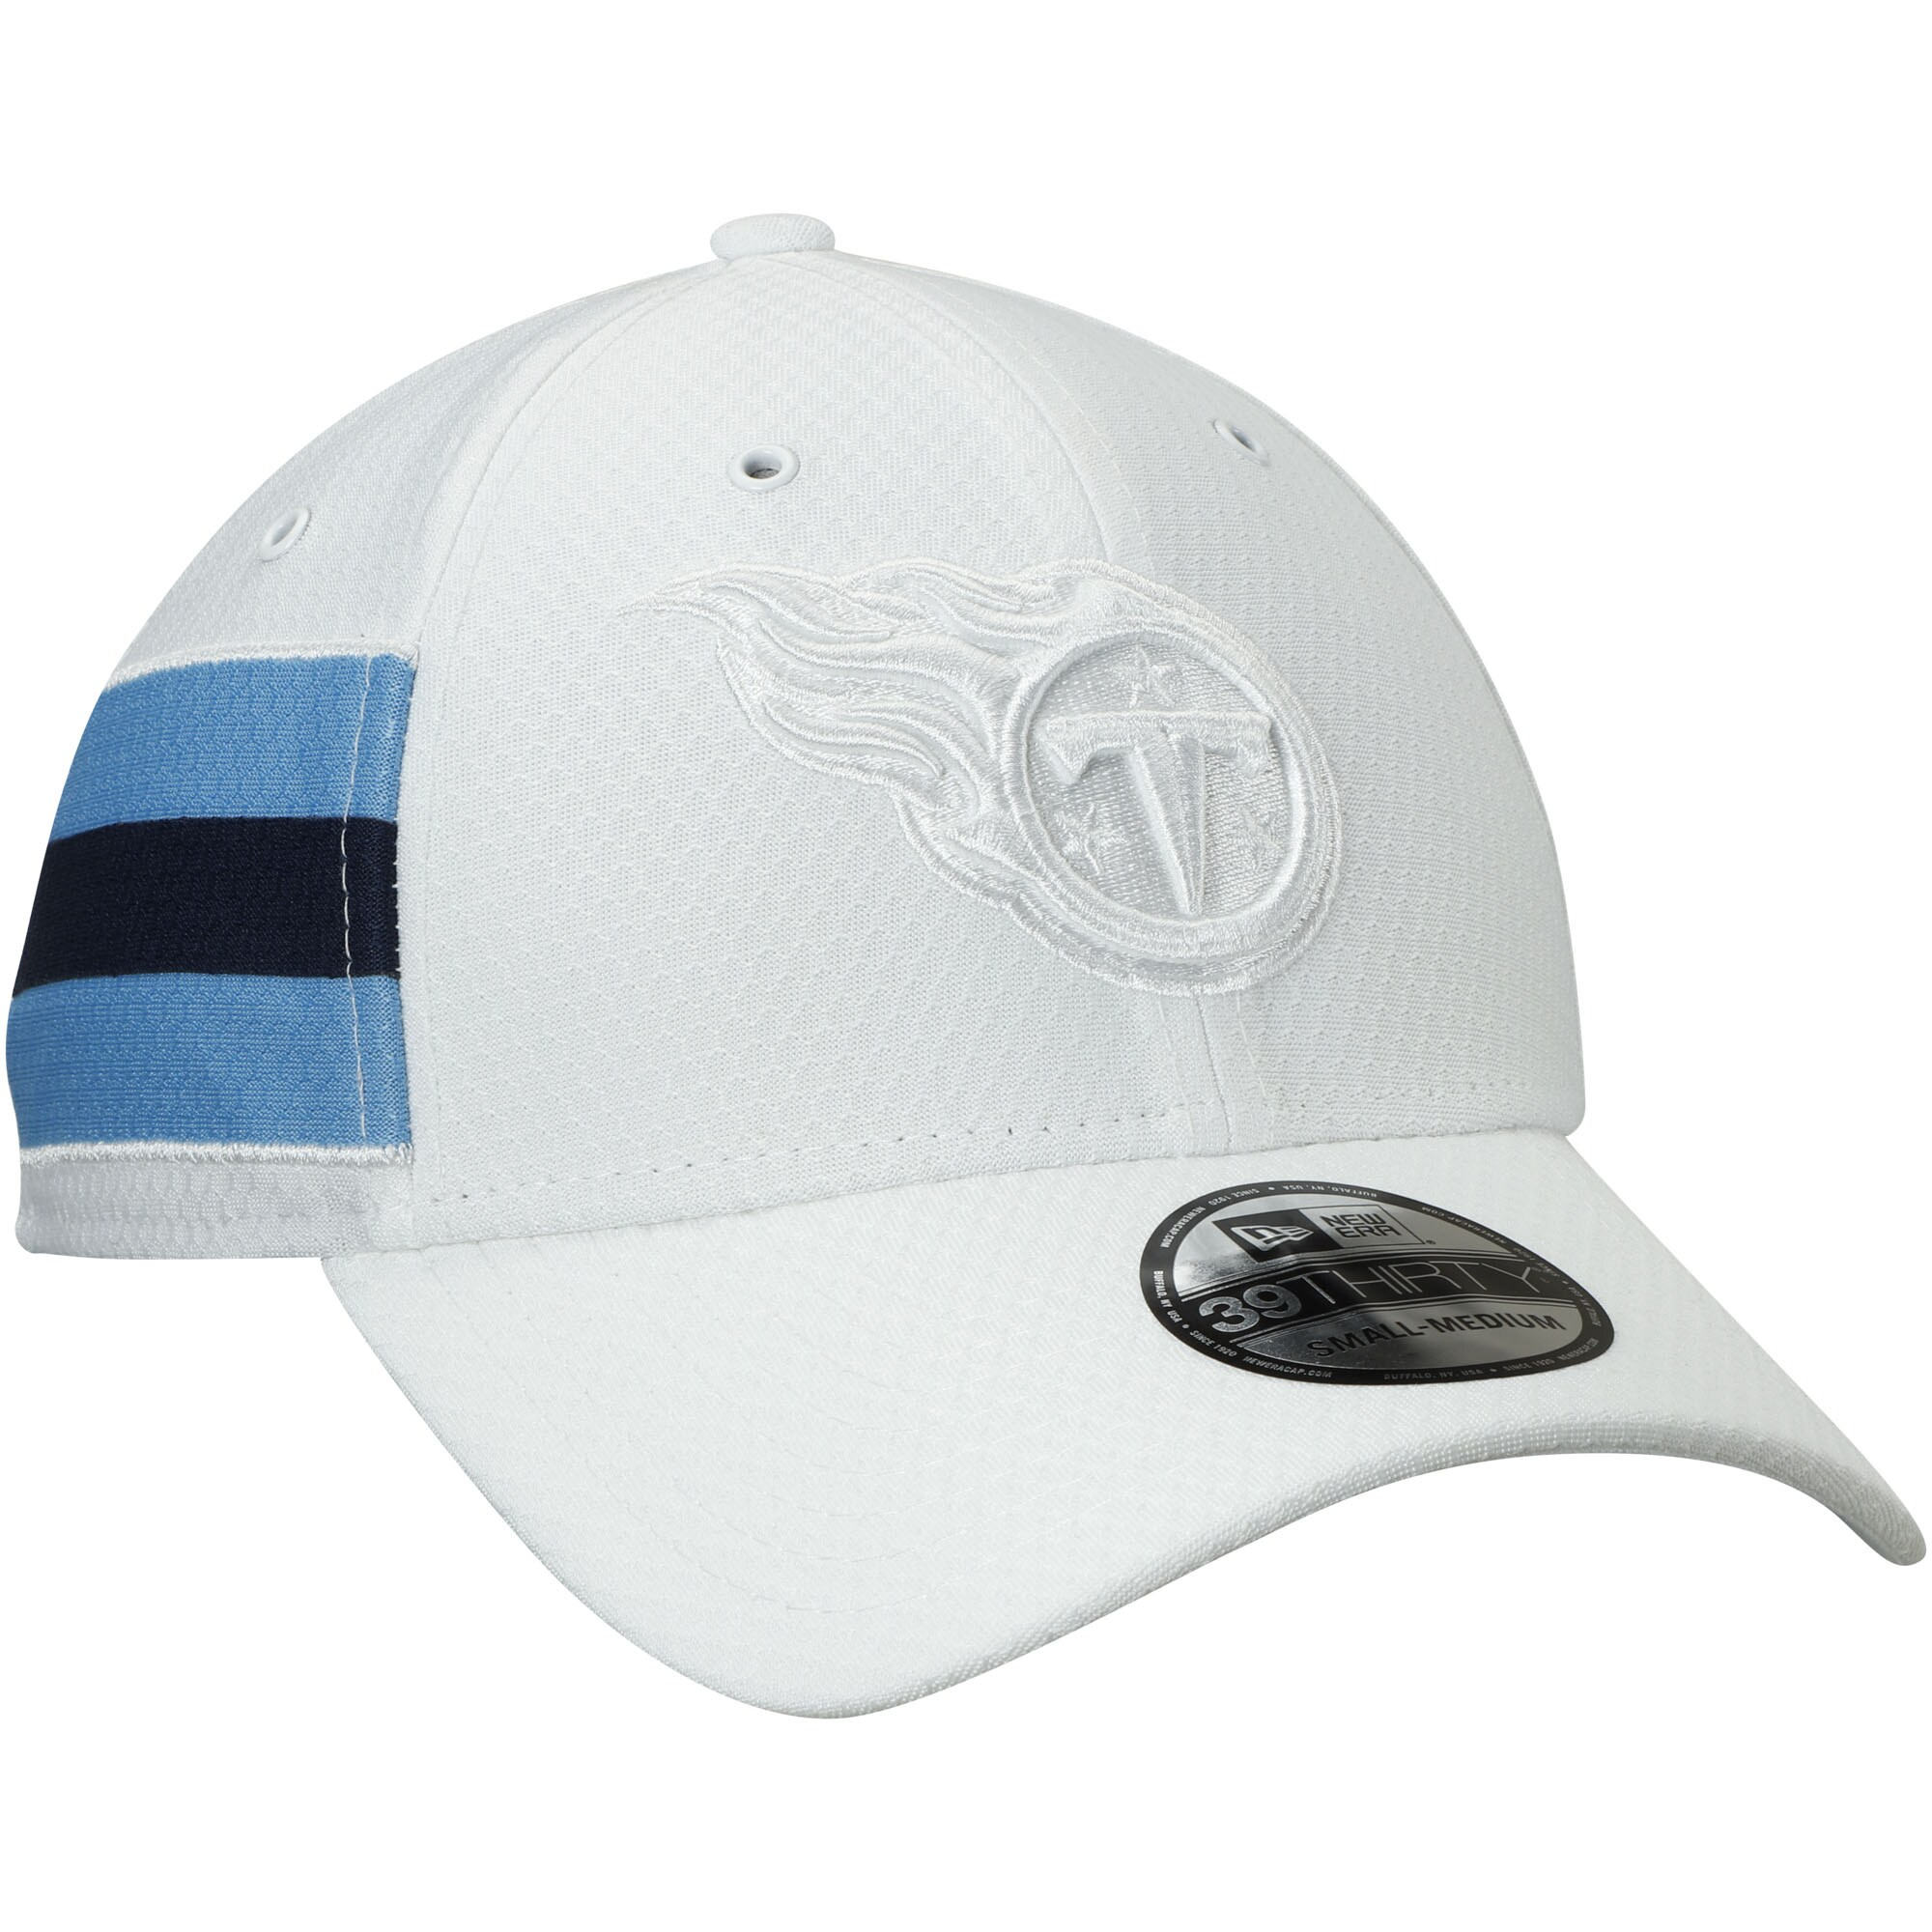 Tennessee Titans New Era Kickoff 39THIRTY Flex Hat - White